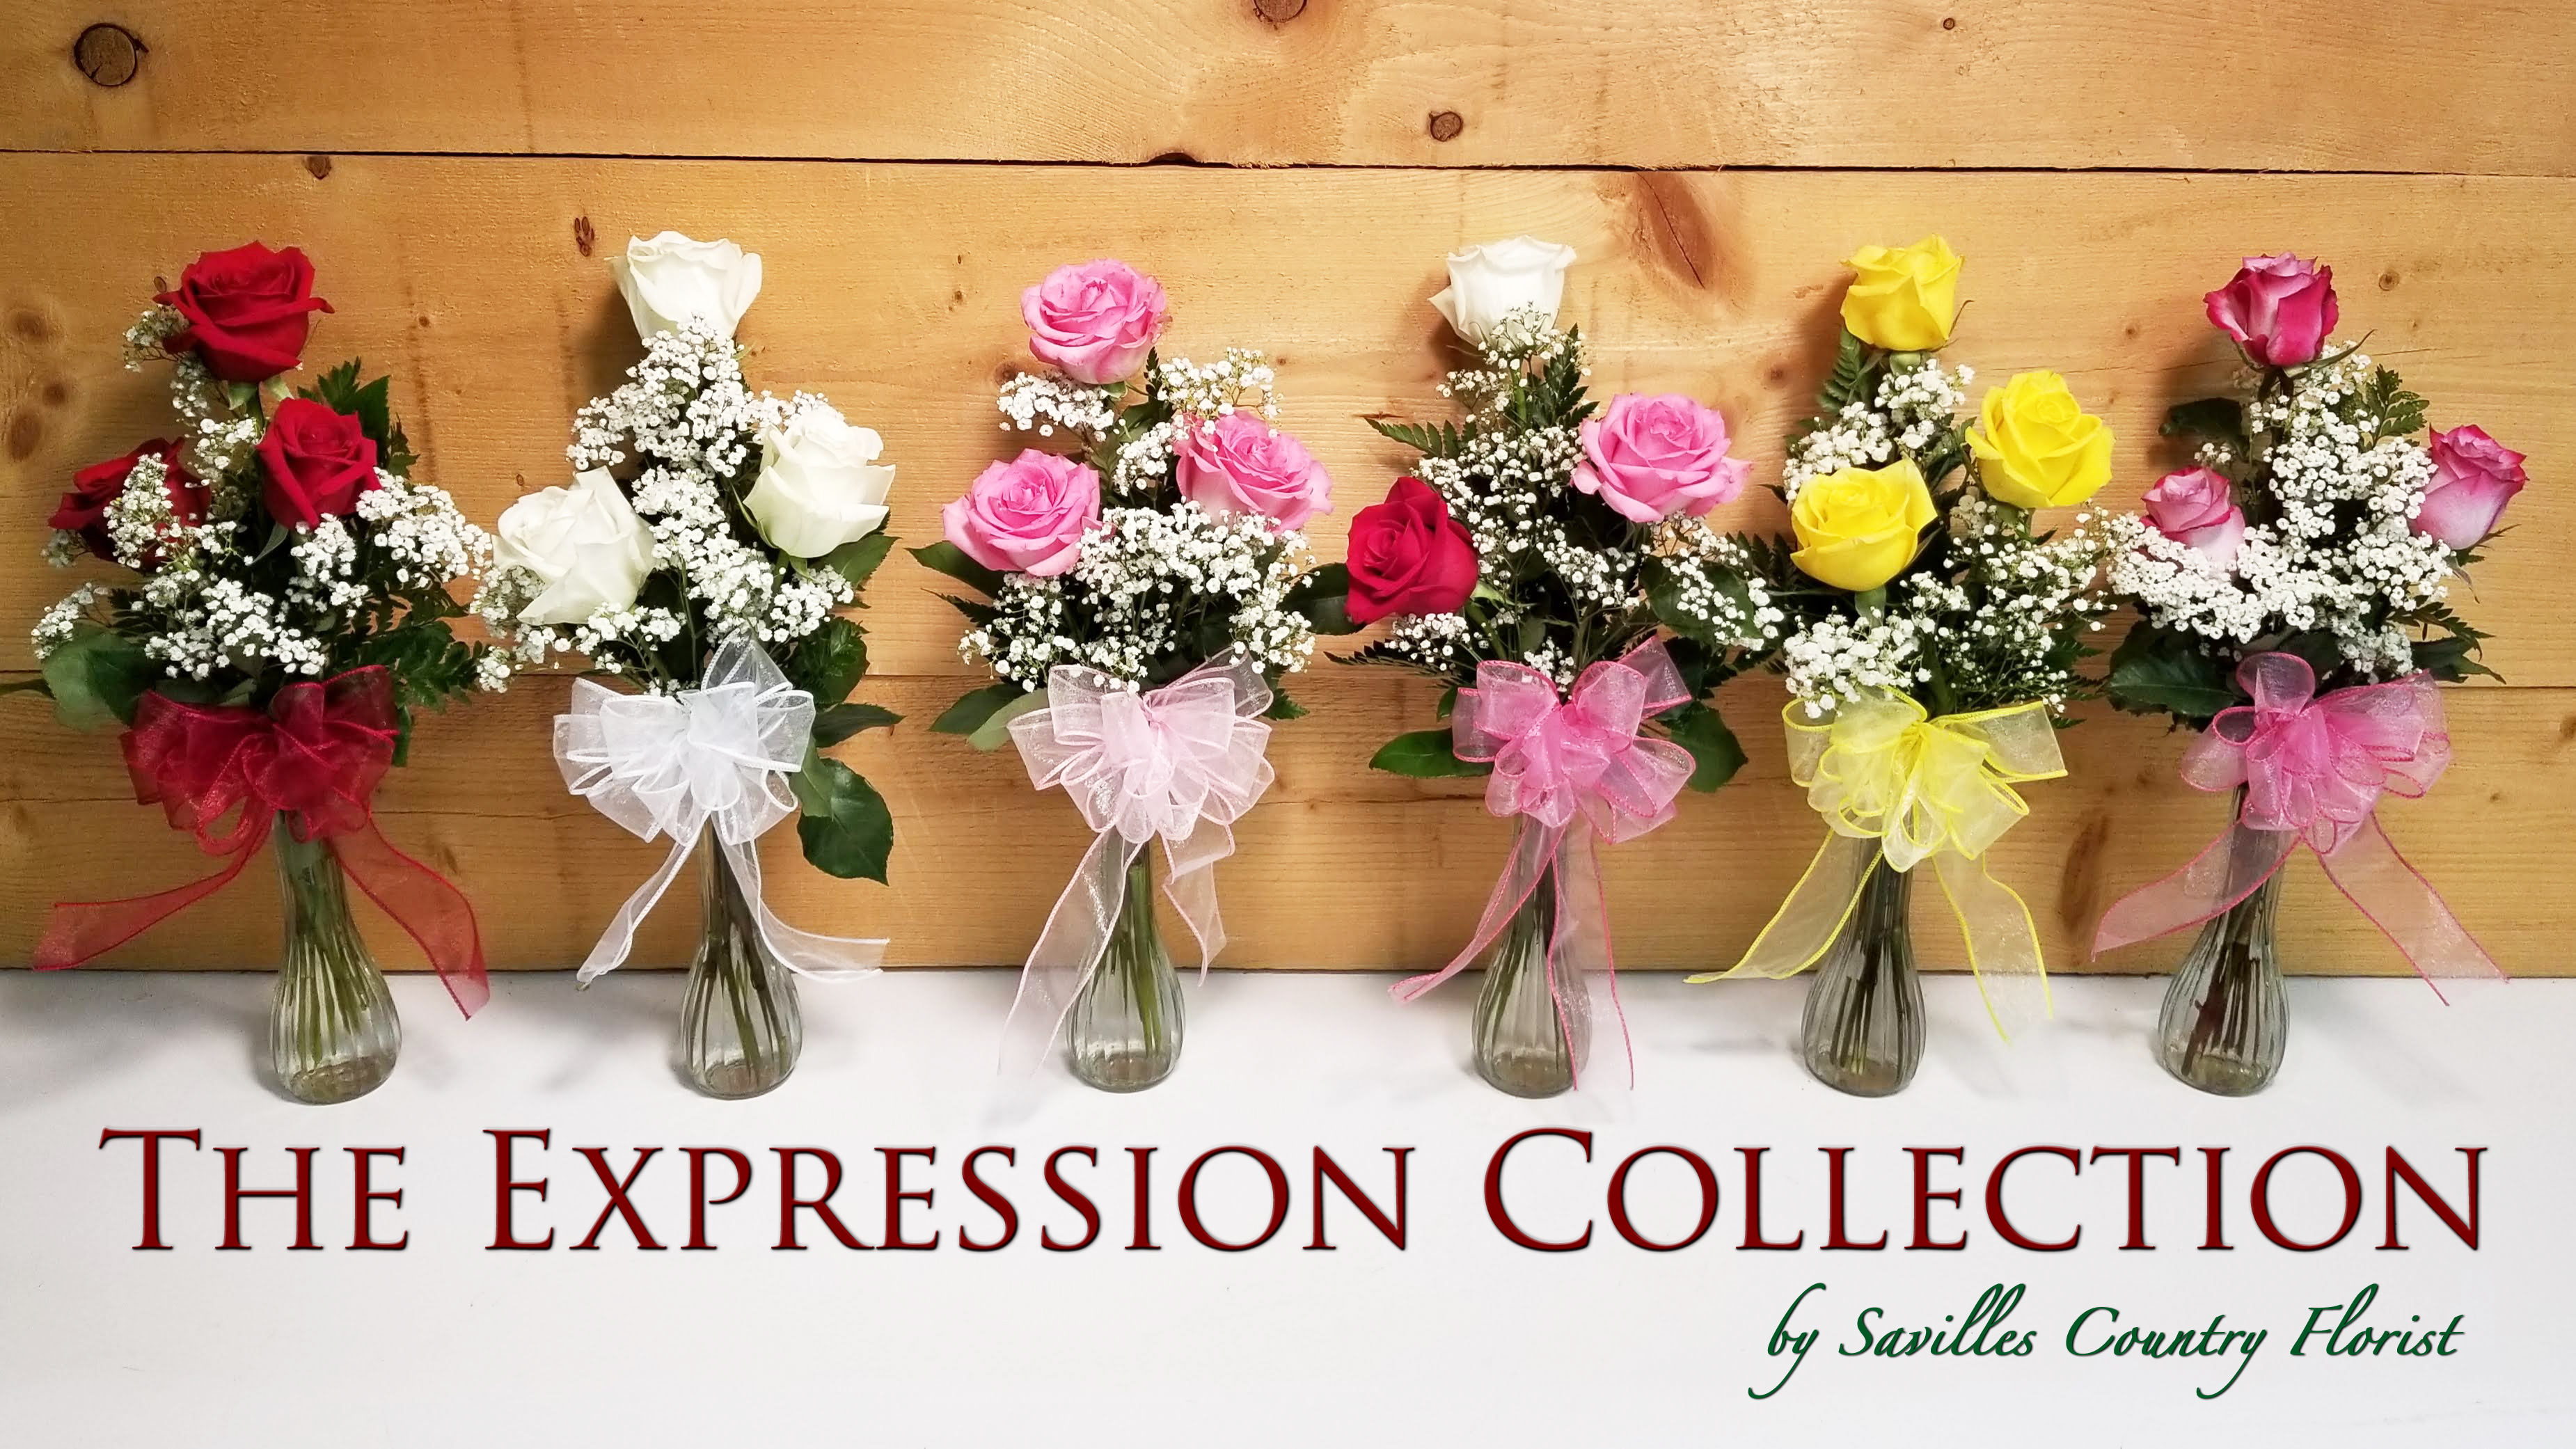 expression-collection-banner.jpg